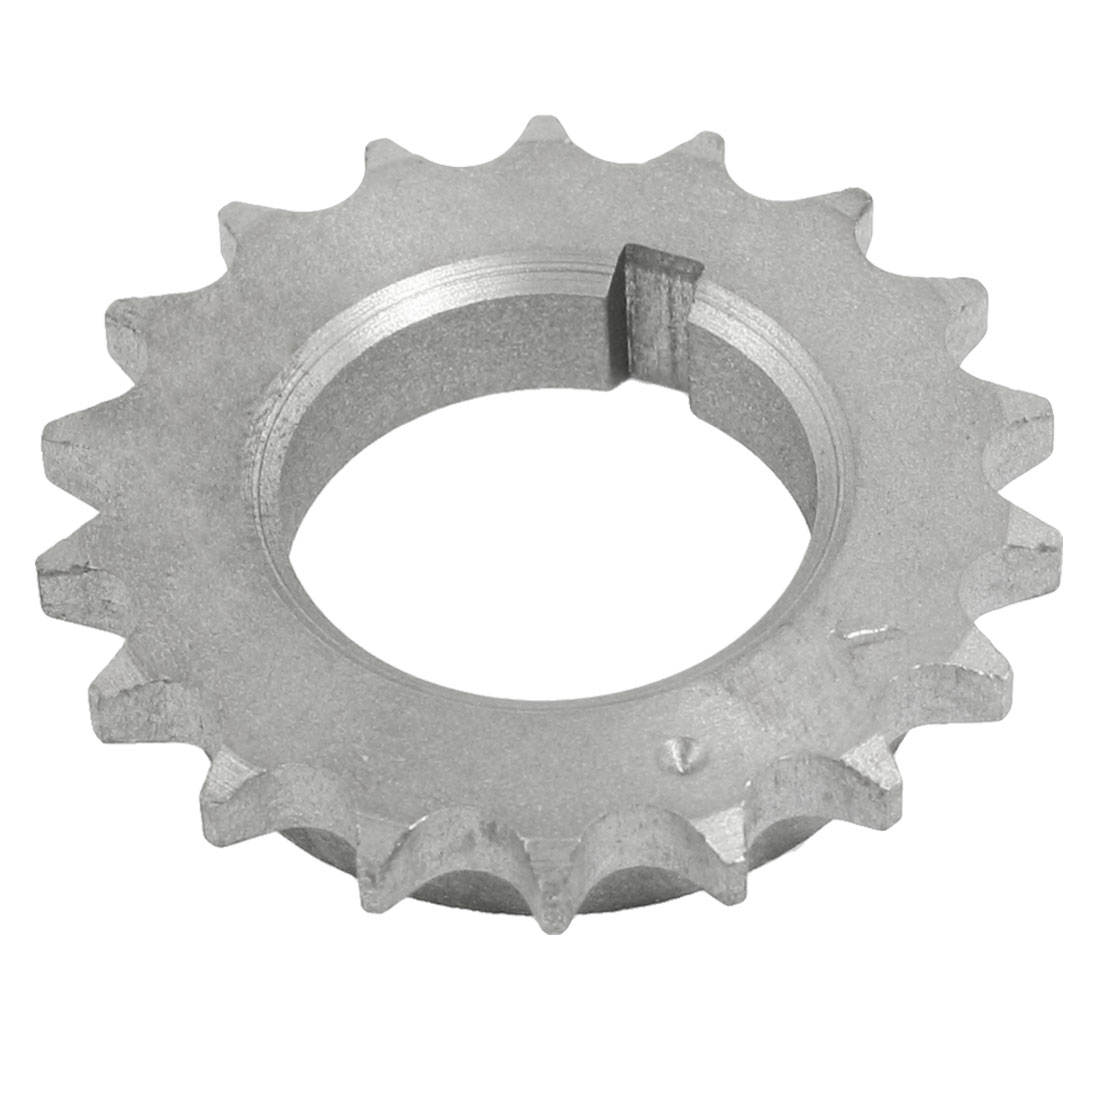 13021-53J00 Engine Timing Crankshaft Drive Sprocket Replacement for Auto Car